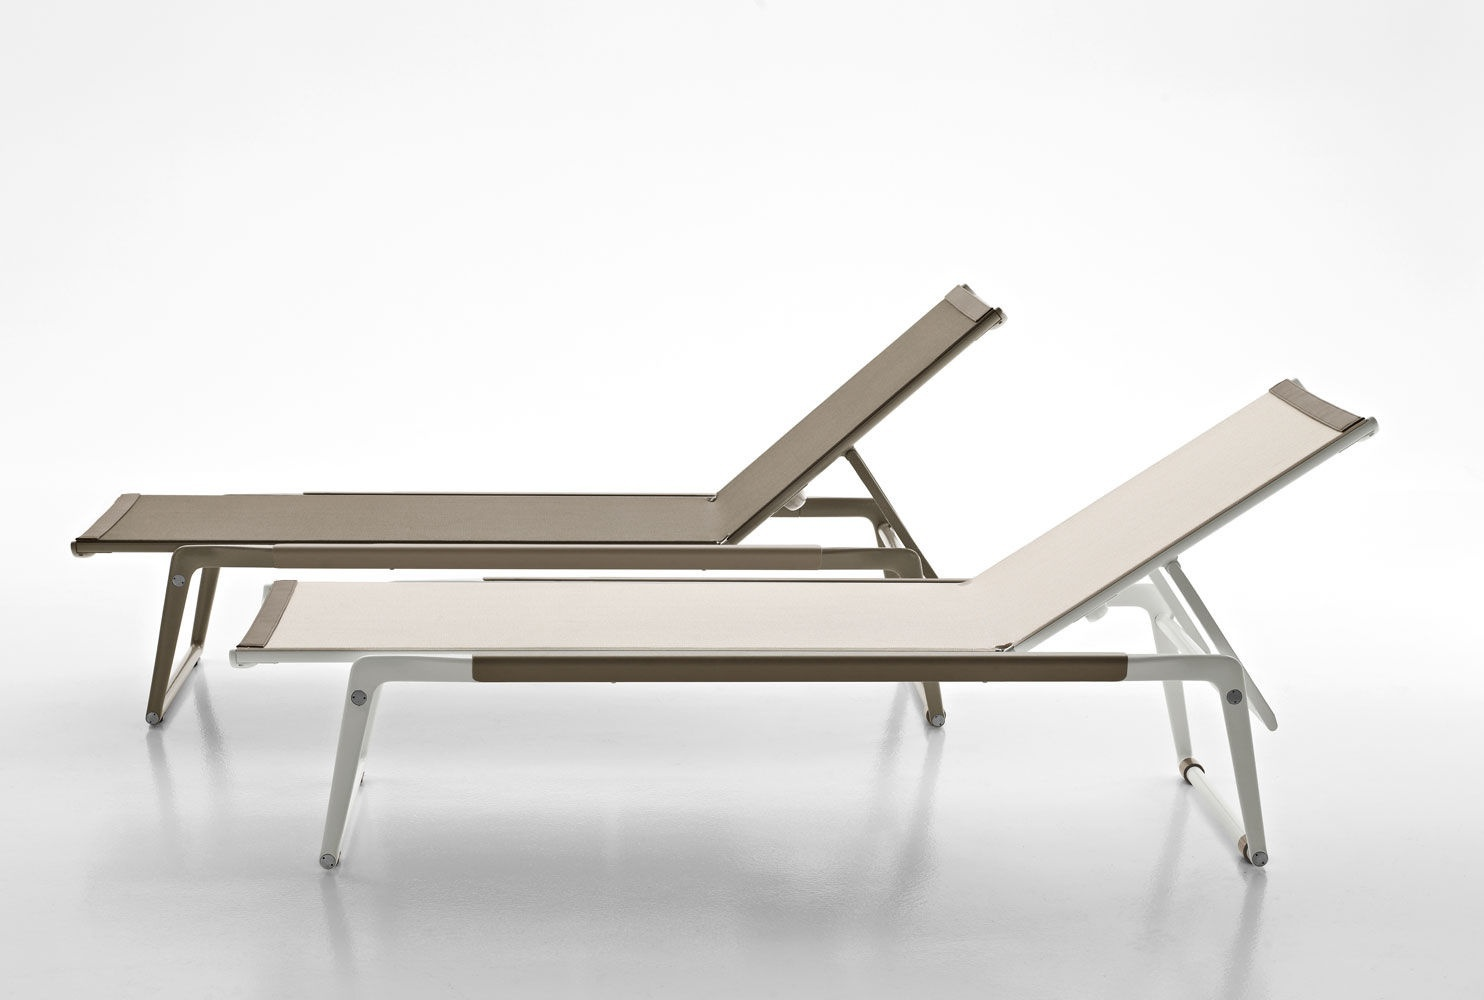 Mirto chaise lounge cast aluminum and plastic b b italia for Chaise longue plastique